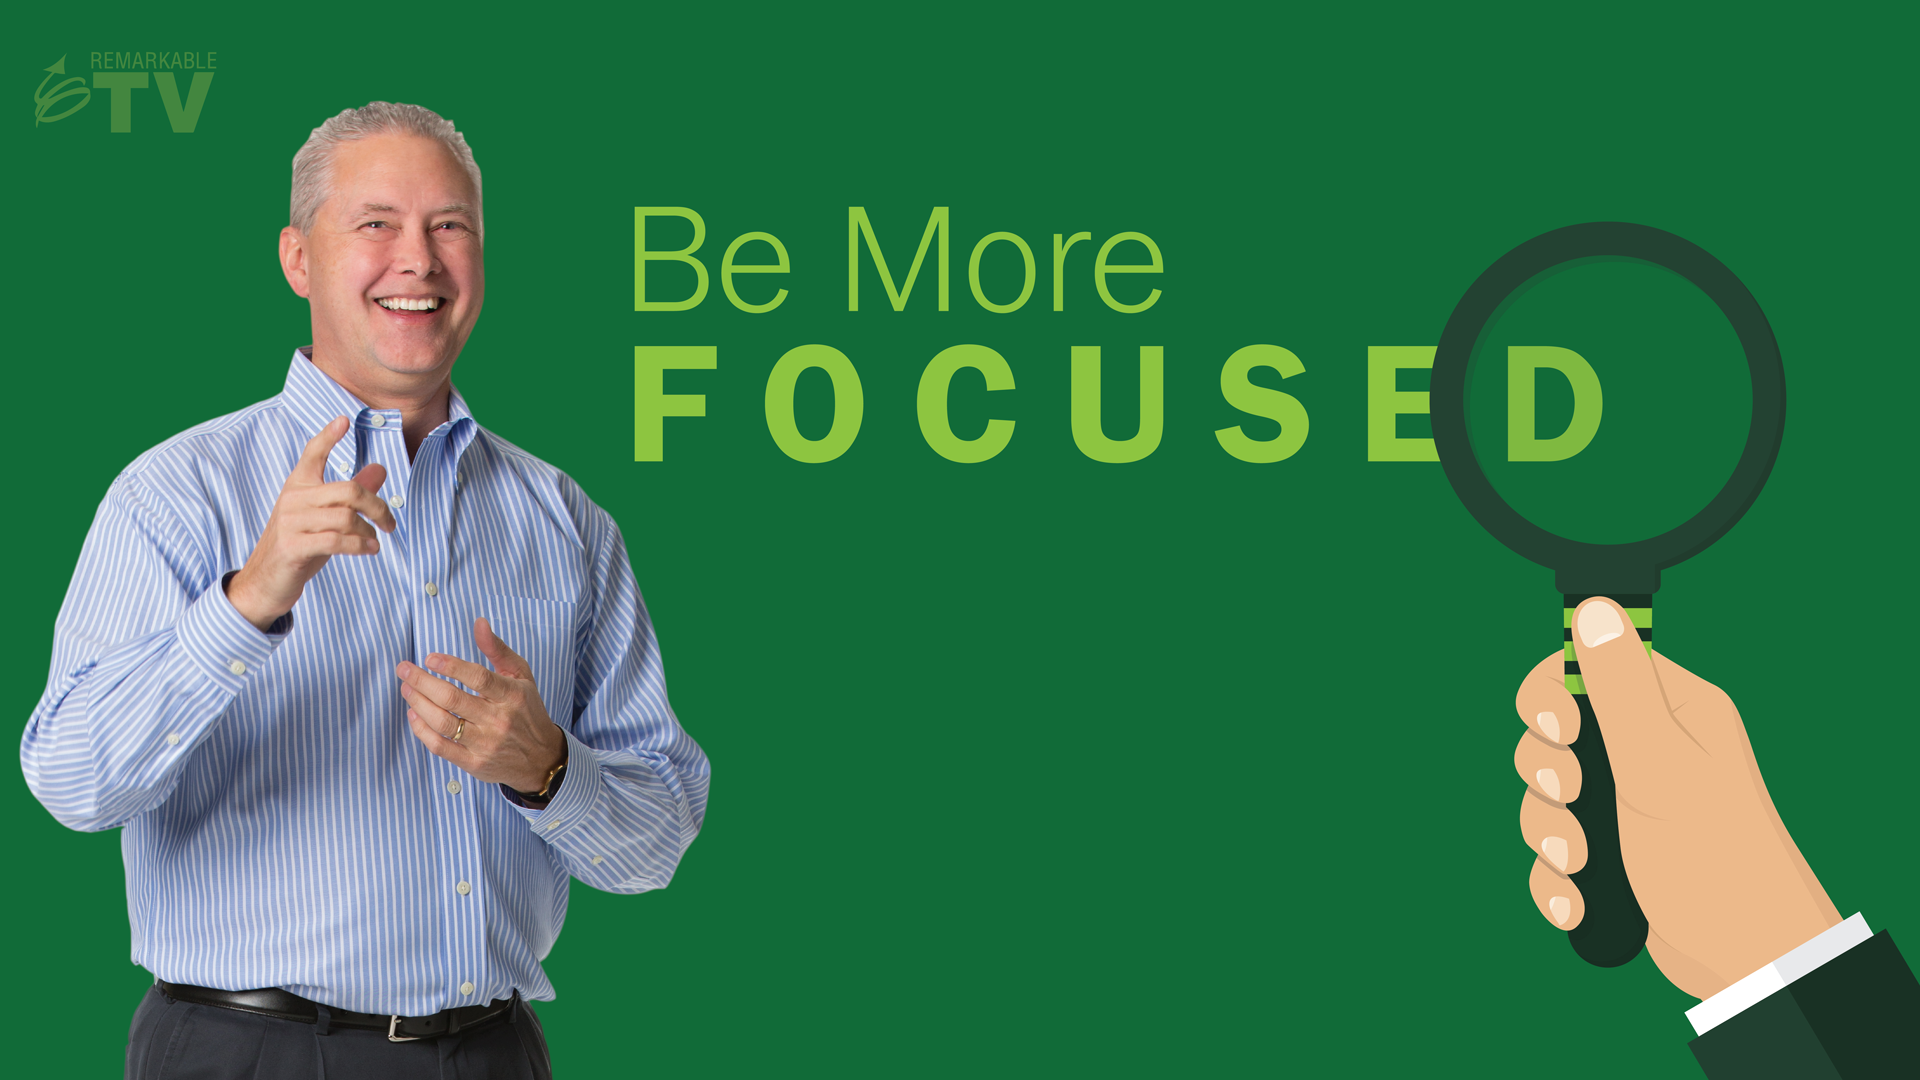 Be More Focused - Remarkable TV with Kevin Eikenberry